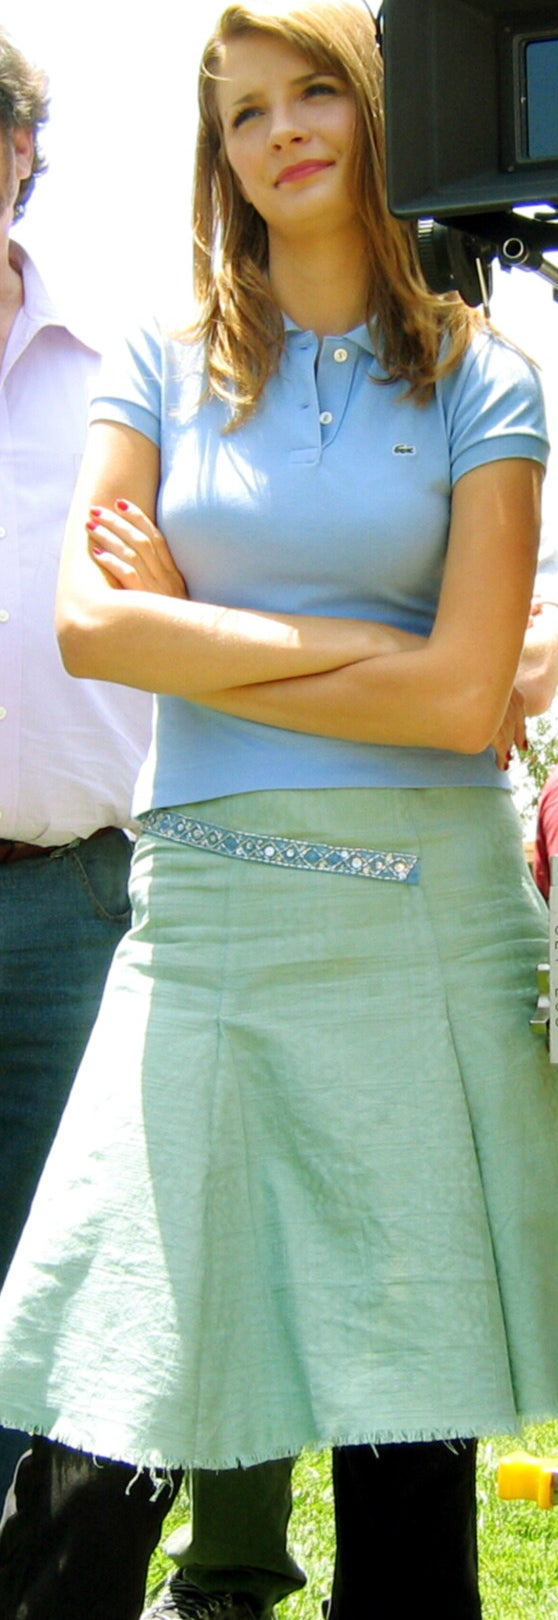 Frayed-bottom flared mid-length skirt with pants underneath, sneakers, a half belt that's diagonal and bedazzled, and a Lacoste polo shirt